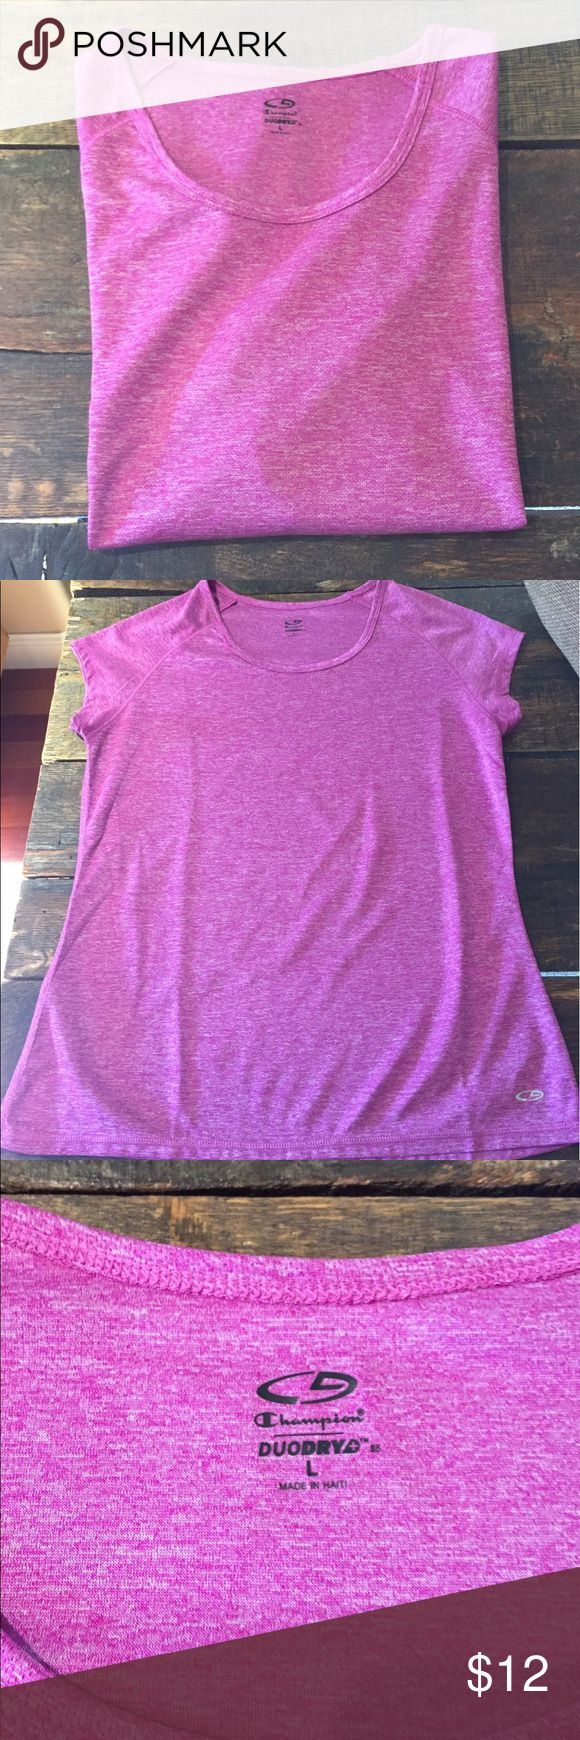 NWOT Champion Duo Dry Shirt NWOT Champion Duo Dry Shirt.  Pink/purple.  Short sleeves.  Brand new.  Never worn.  🐶 Friendly home.  Smoke Free!  Make me an offer! Champion Tops